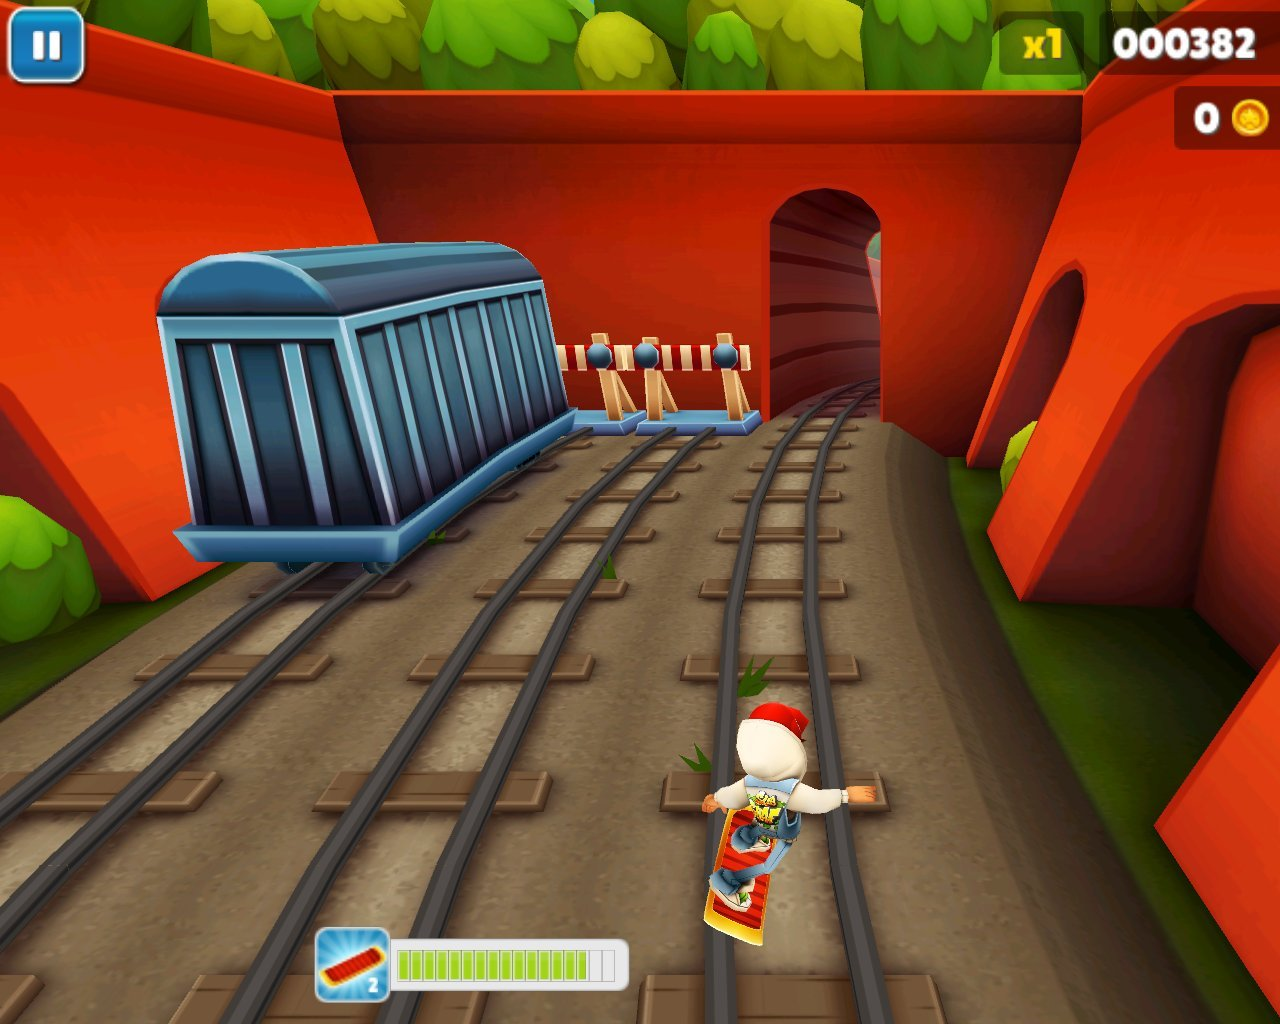 Link Download: Game Subway Surfer PC Full Version